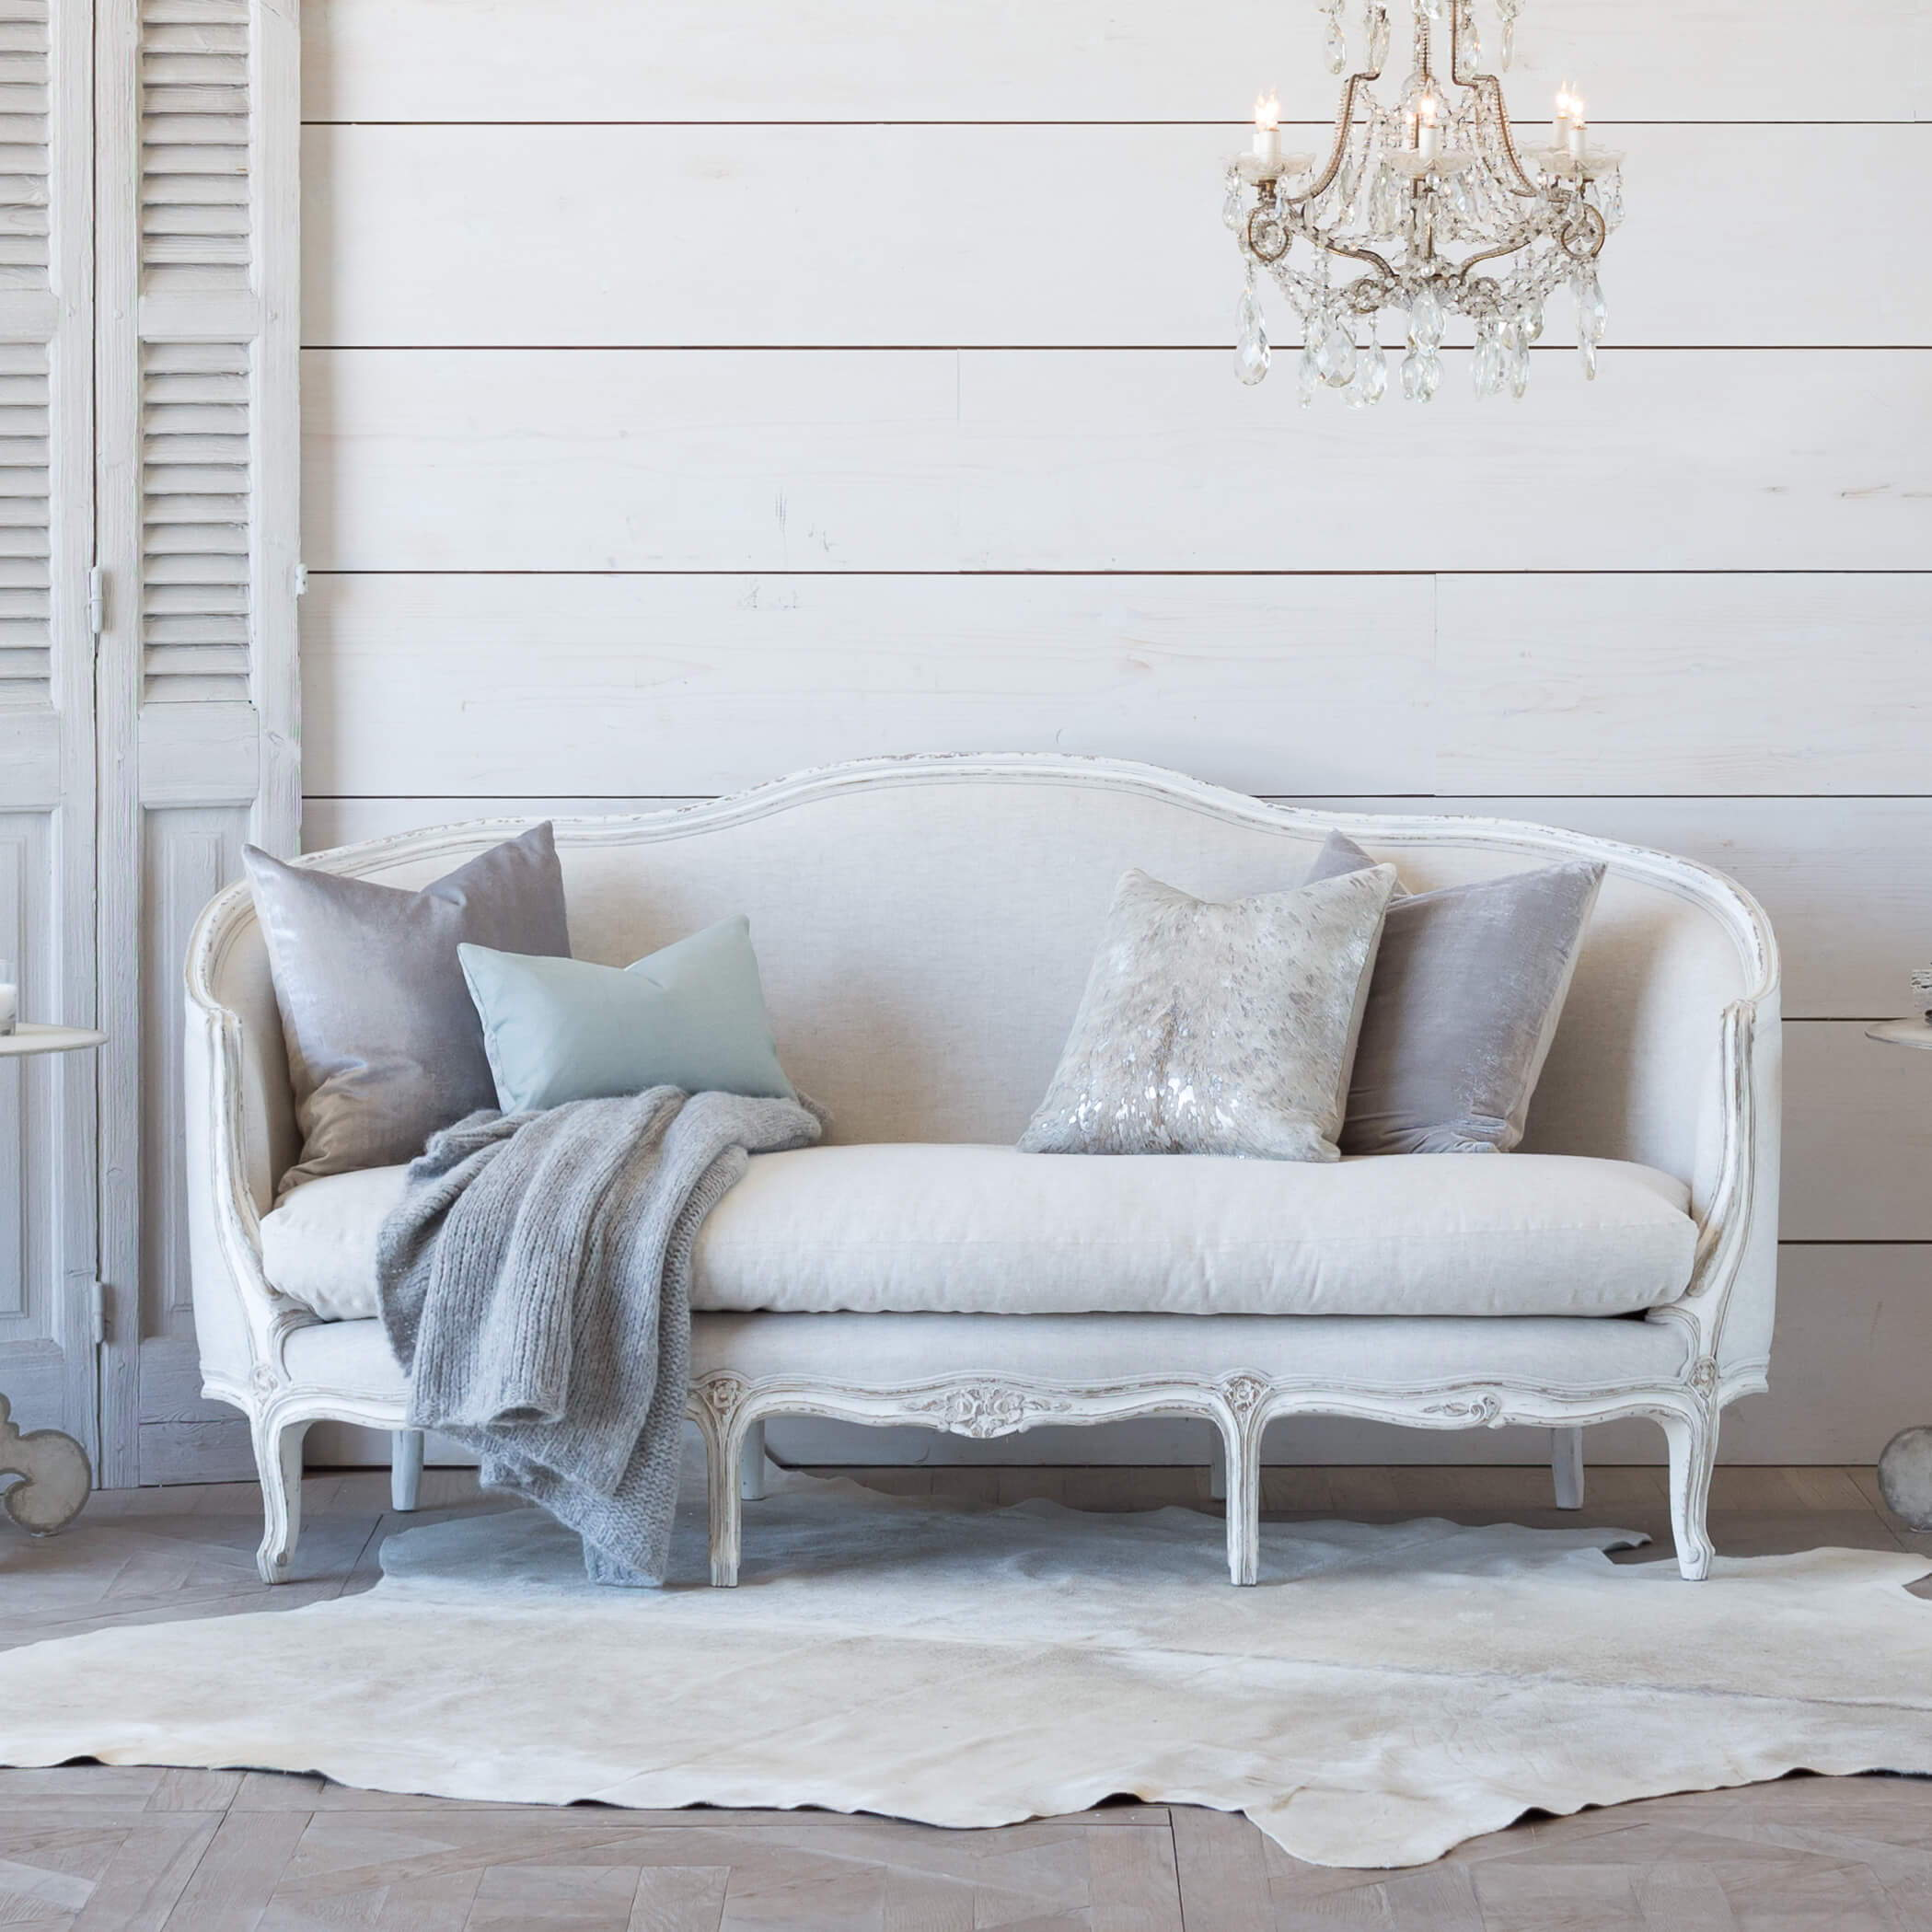 545ef24ff2231 Eloquence® Seraphine Canape Sofa in Fog Linen and Gesso and Oyster Finish